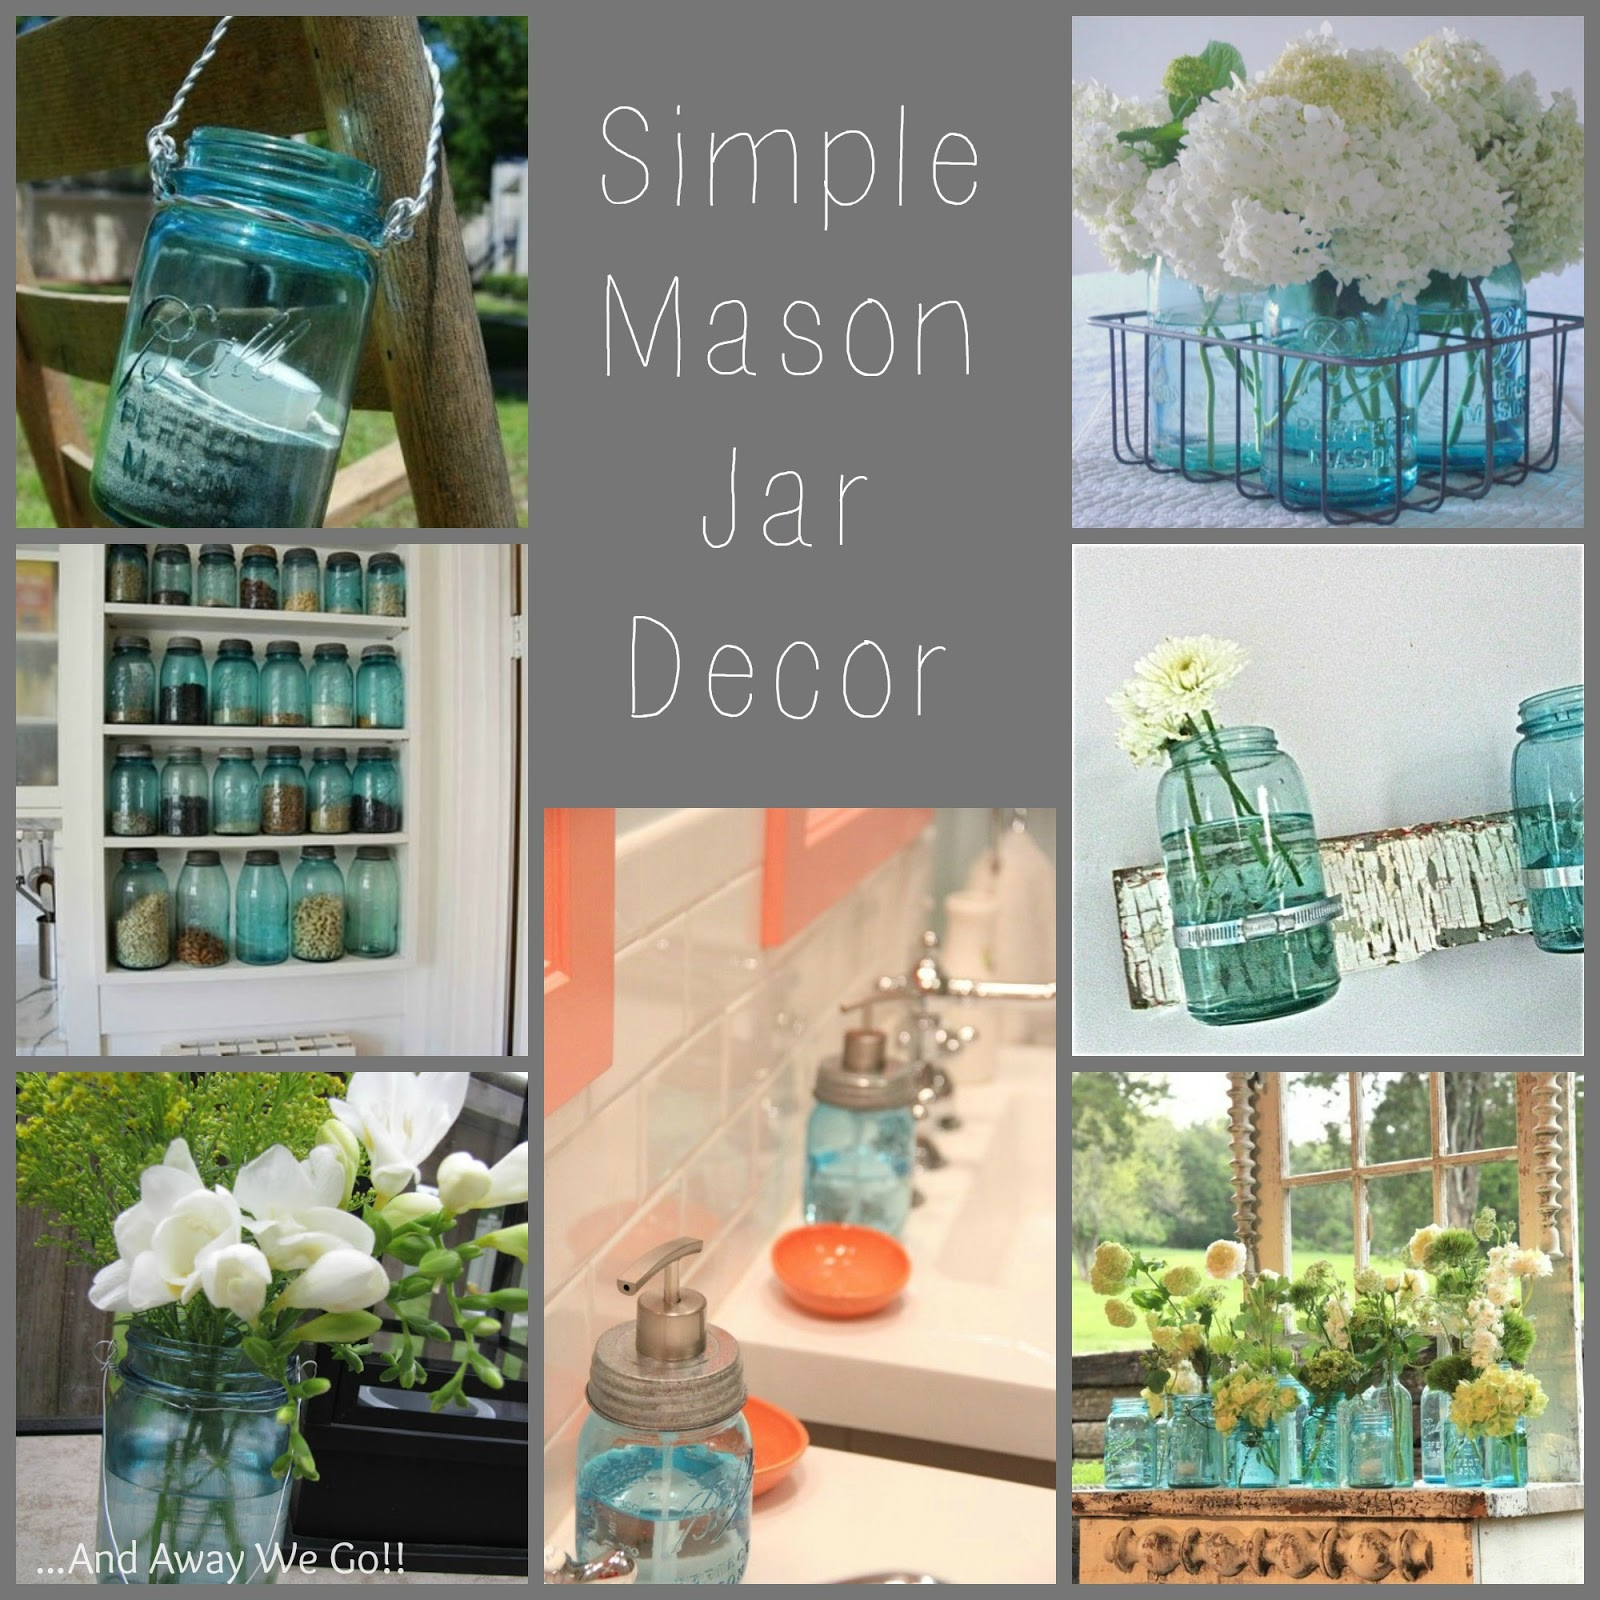 What To Put In Mason Jars For Decoration: And Away We Go!: Simple Mason Jar Decor